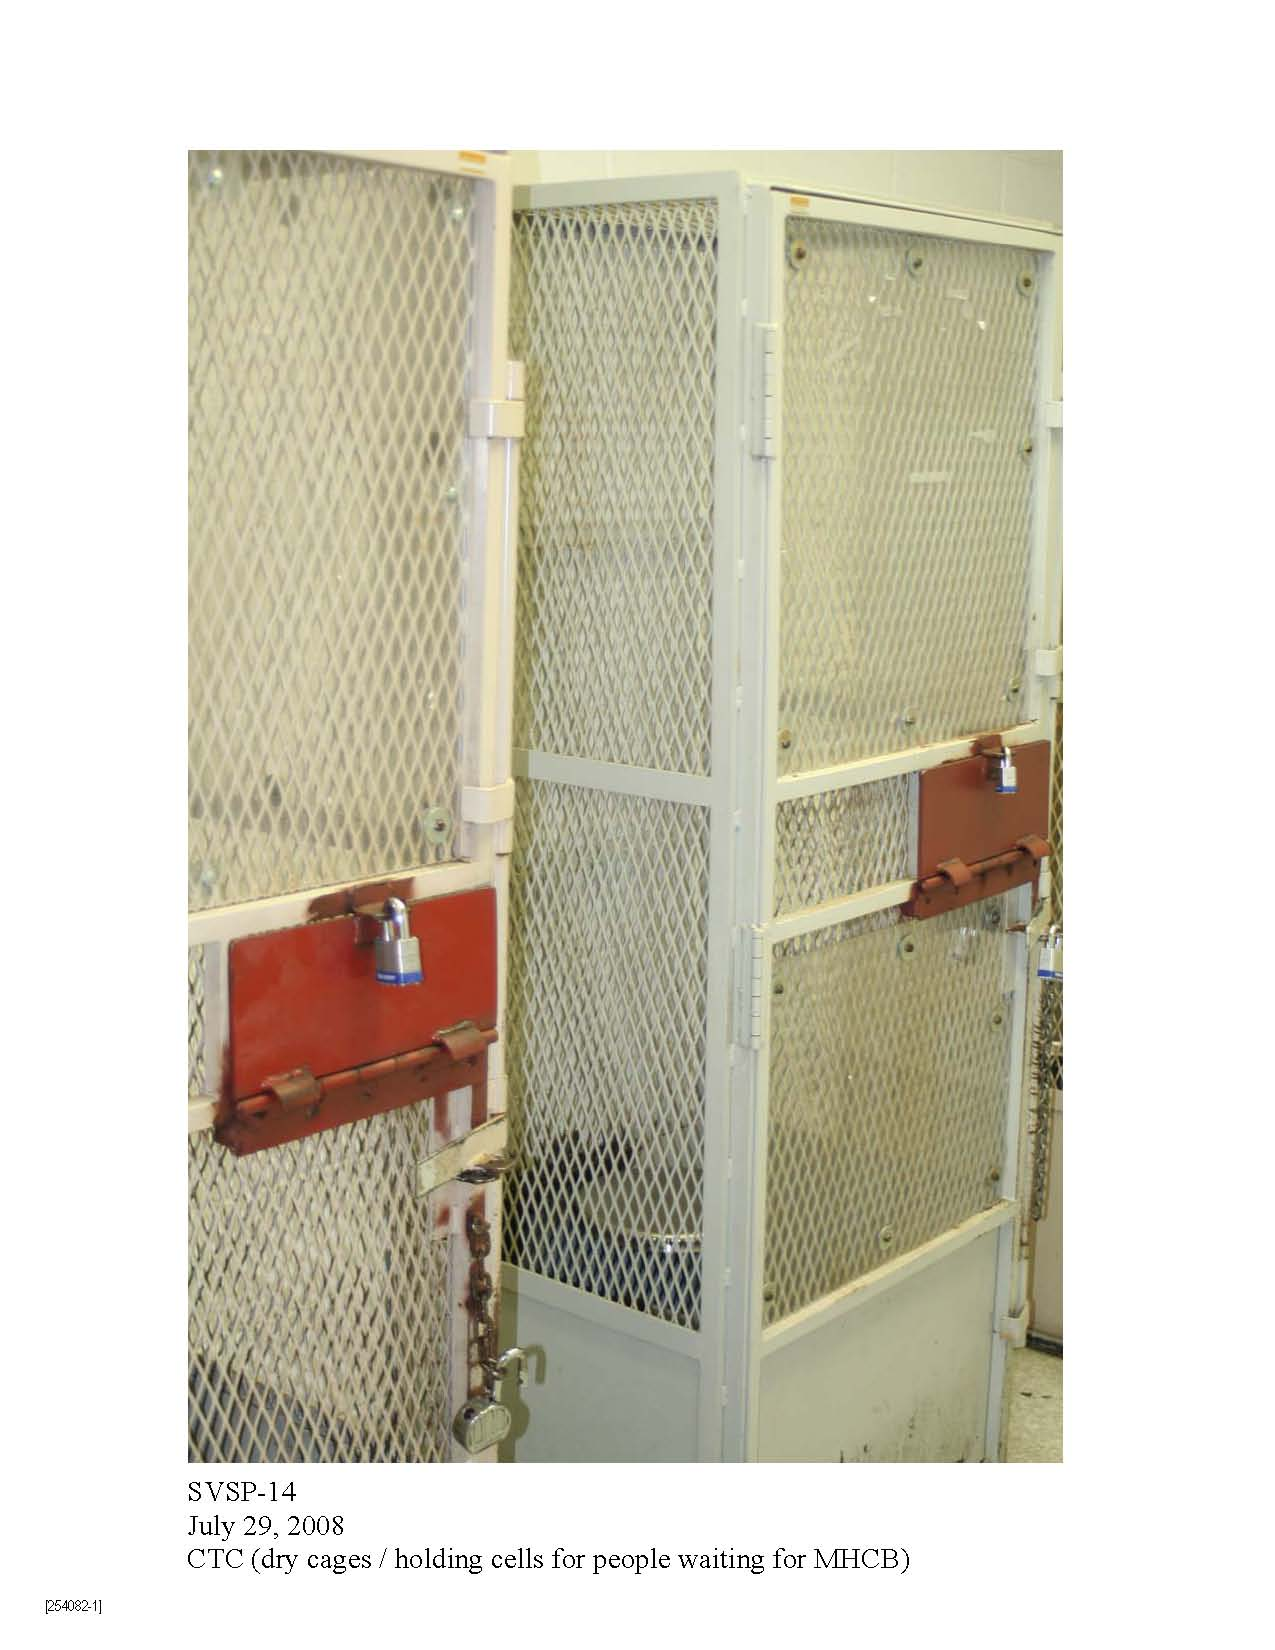 P-338-SVSP-14-Dry-Cages-or-Holding-Cells-for-People-Waiting-for-MHCB